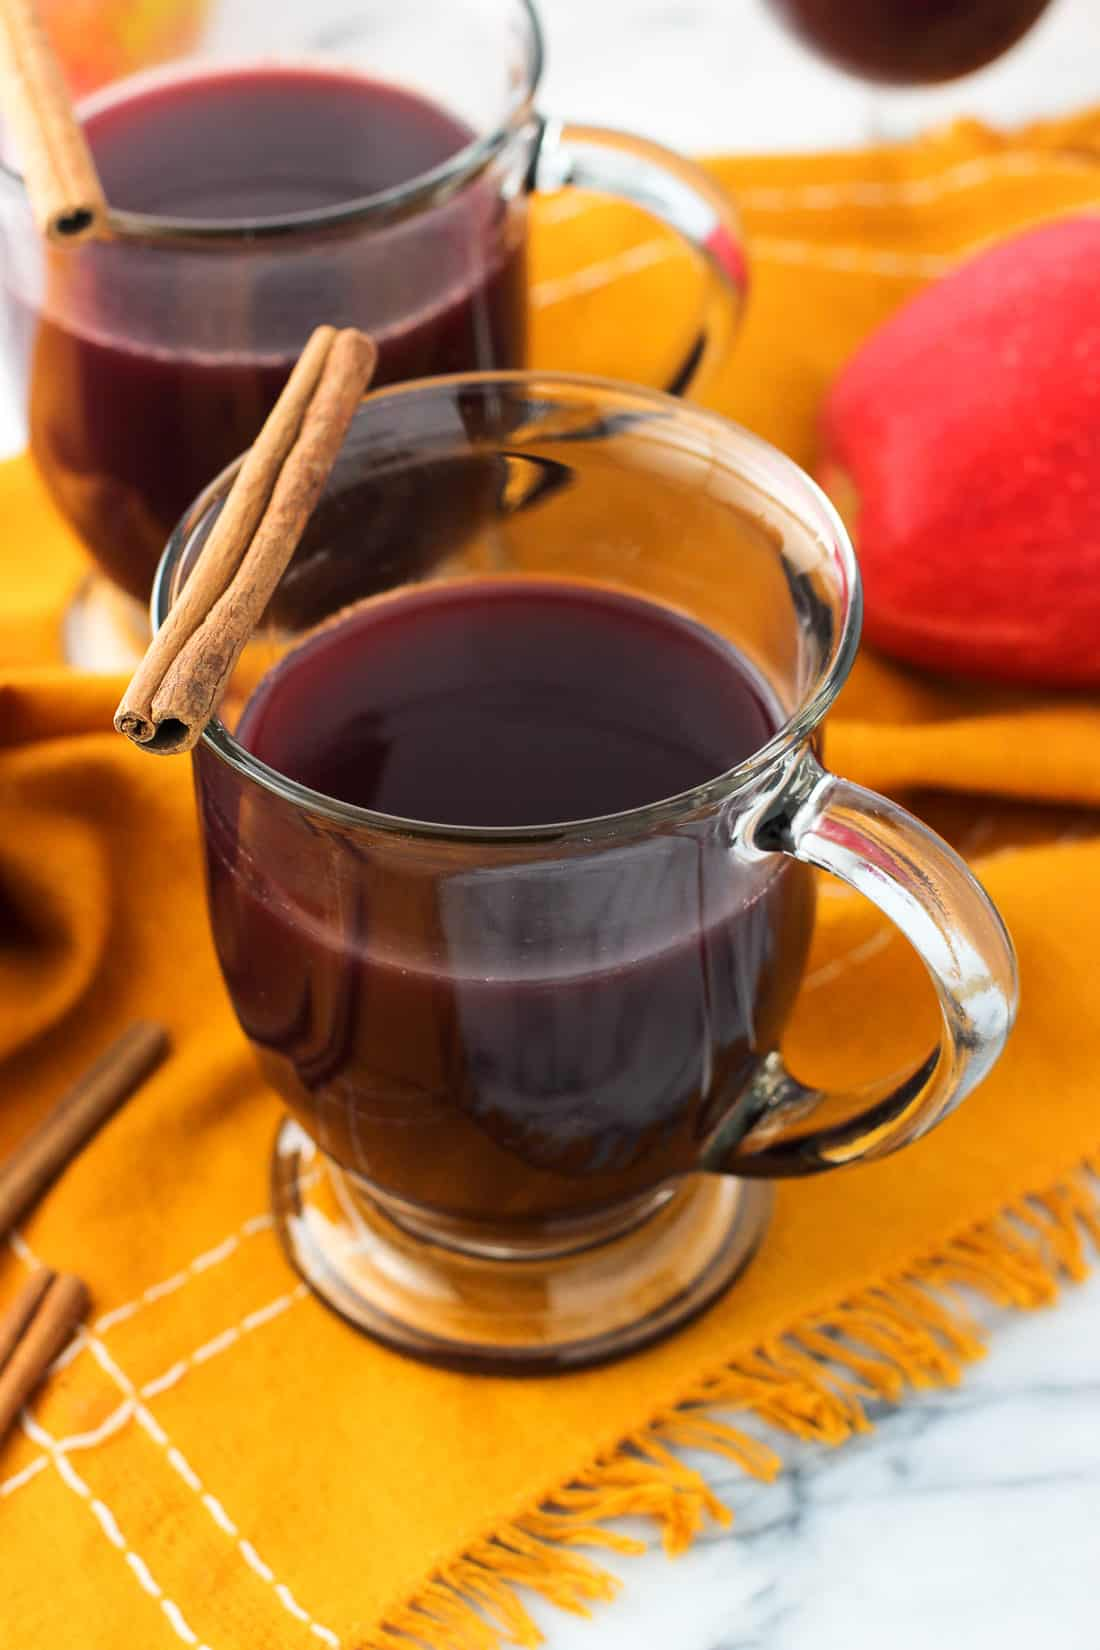 Ginger mulled wine is a cozy, warmly-spiced drink that features a spice shortcut with a kick from fresh ginger.